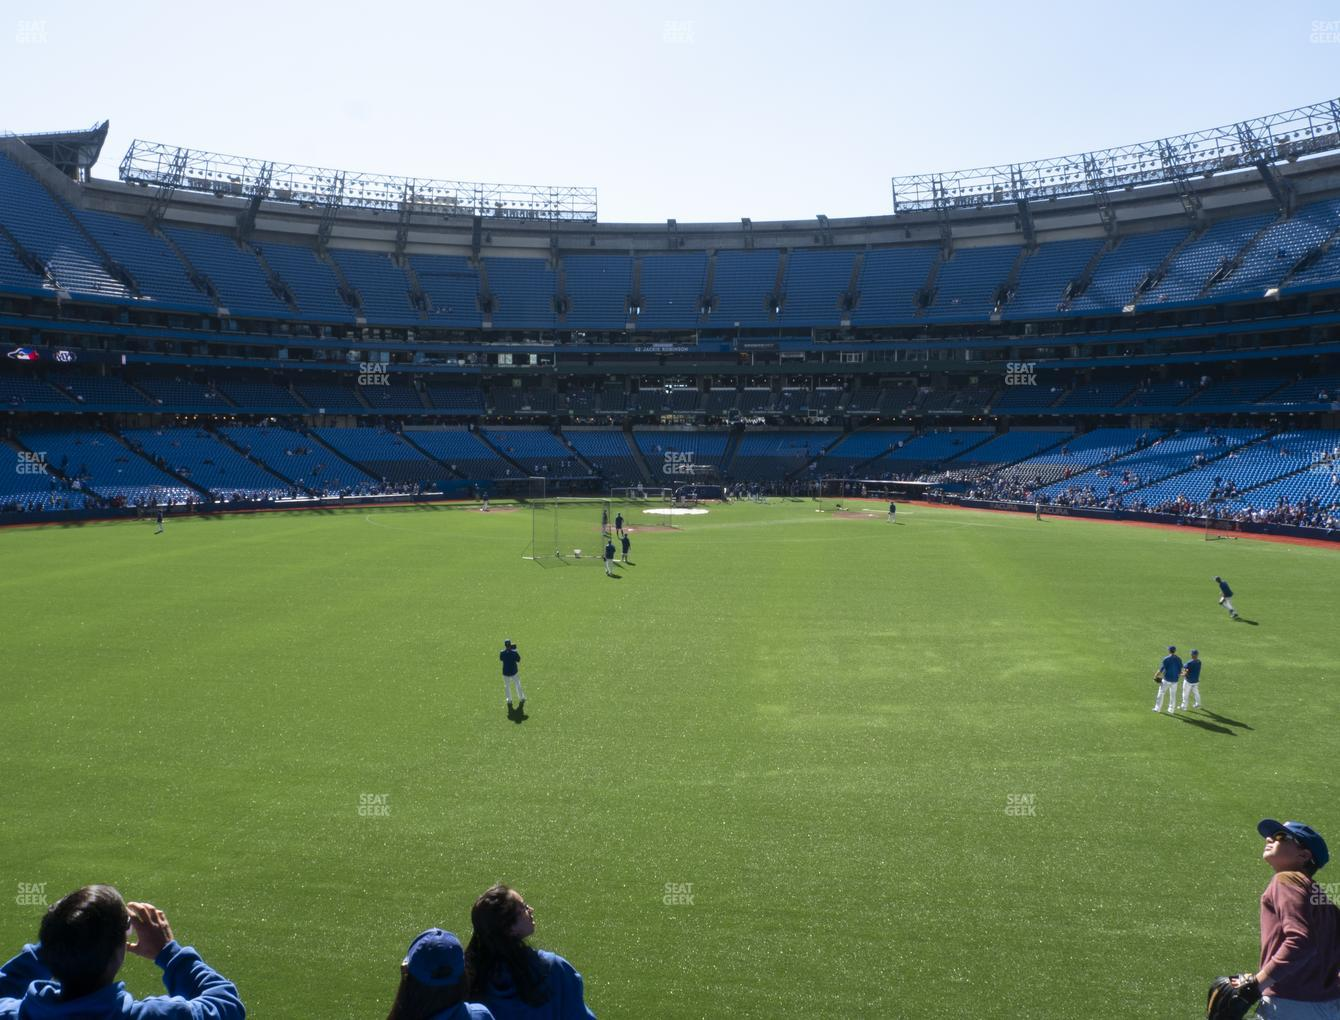 Toronto Blue Jays at Rogers Centre Section 142 R View